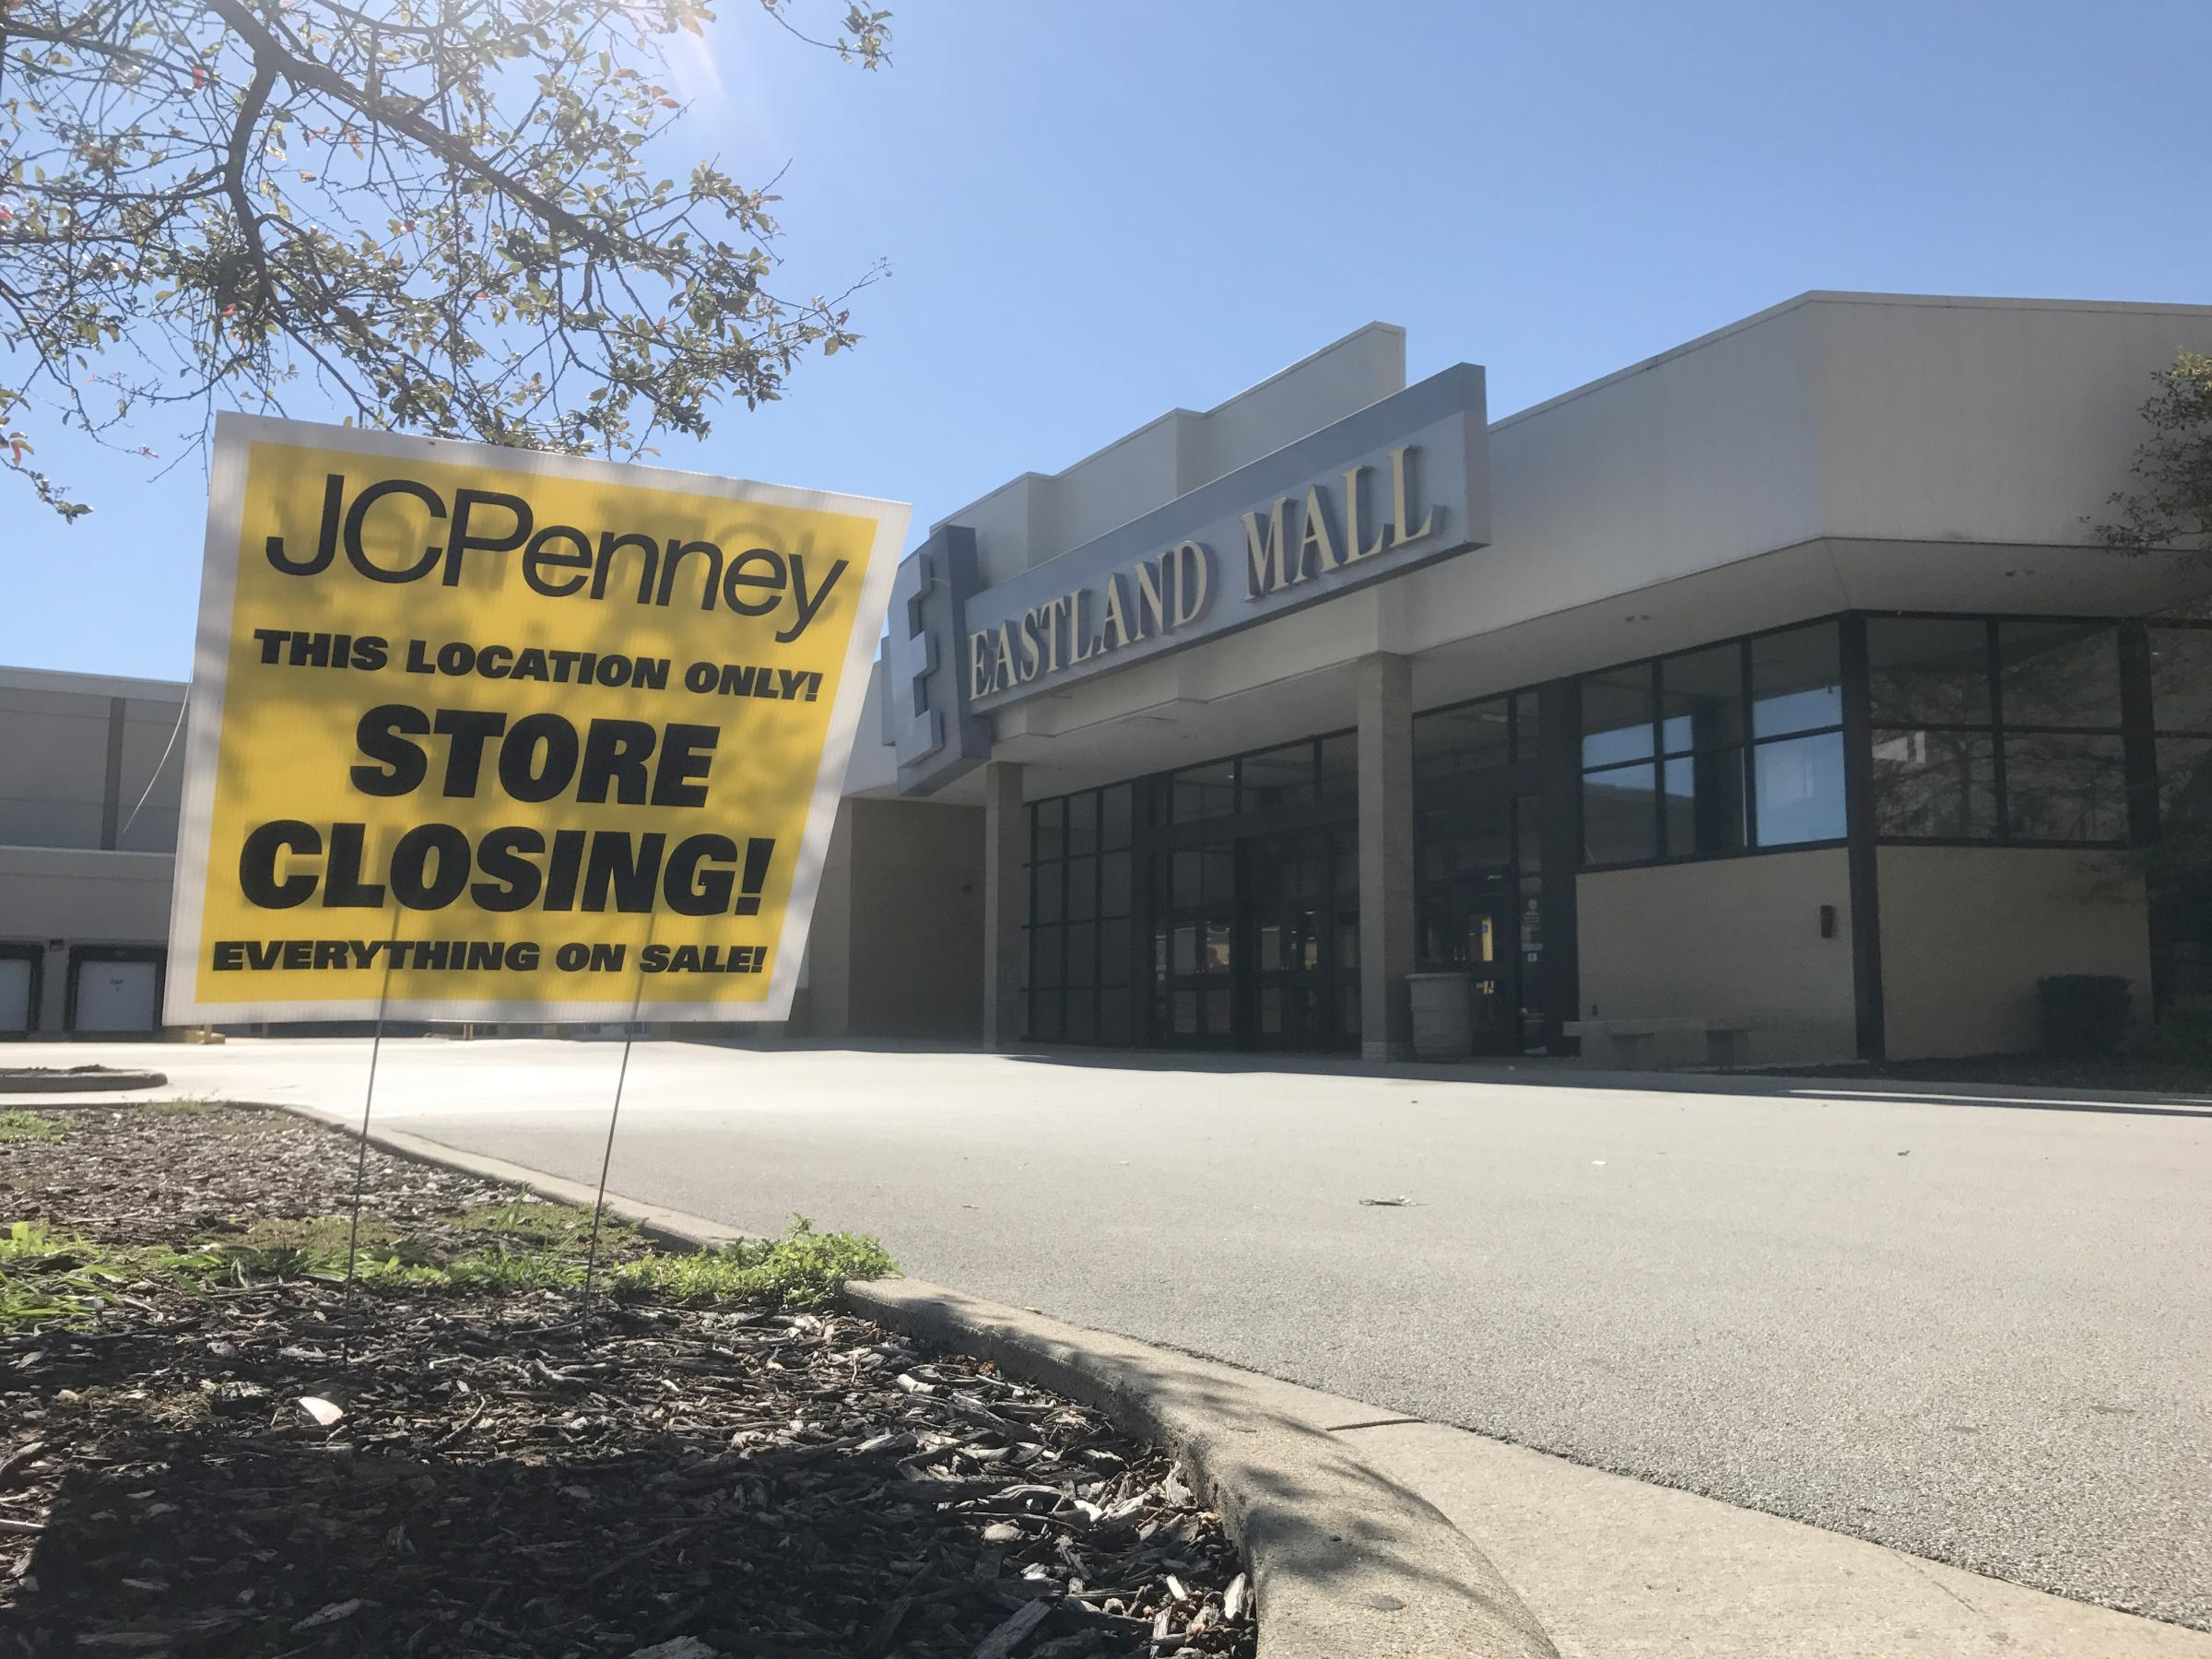 Eastland Mall is a great place to while away a couple of hours. While you may not recognize Bloomington, the destination it is located in, it's likely that you're aware of .